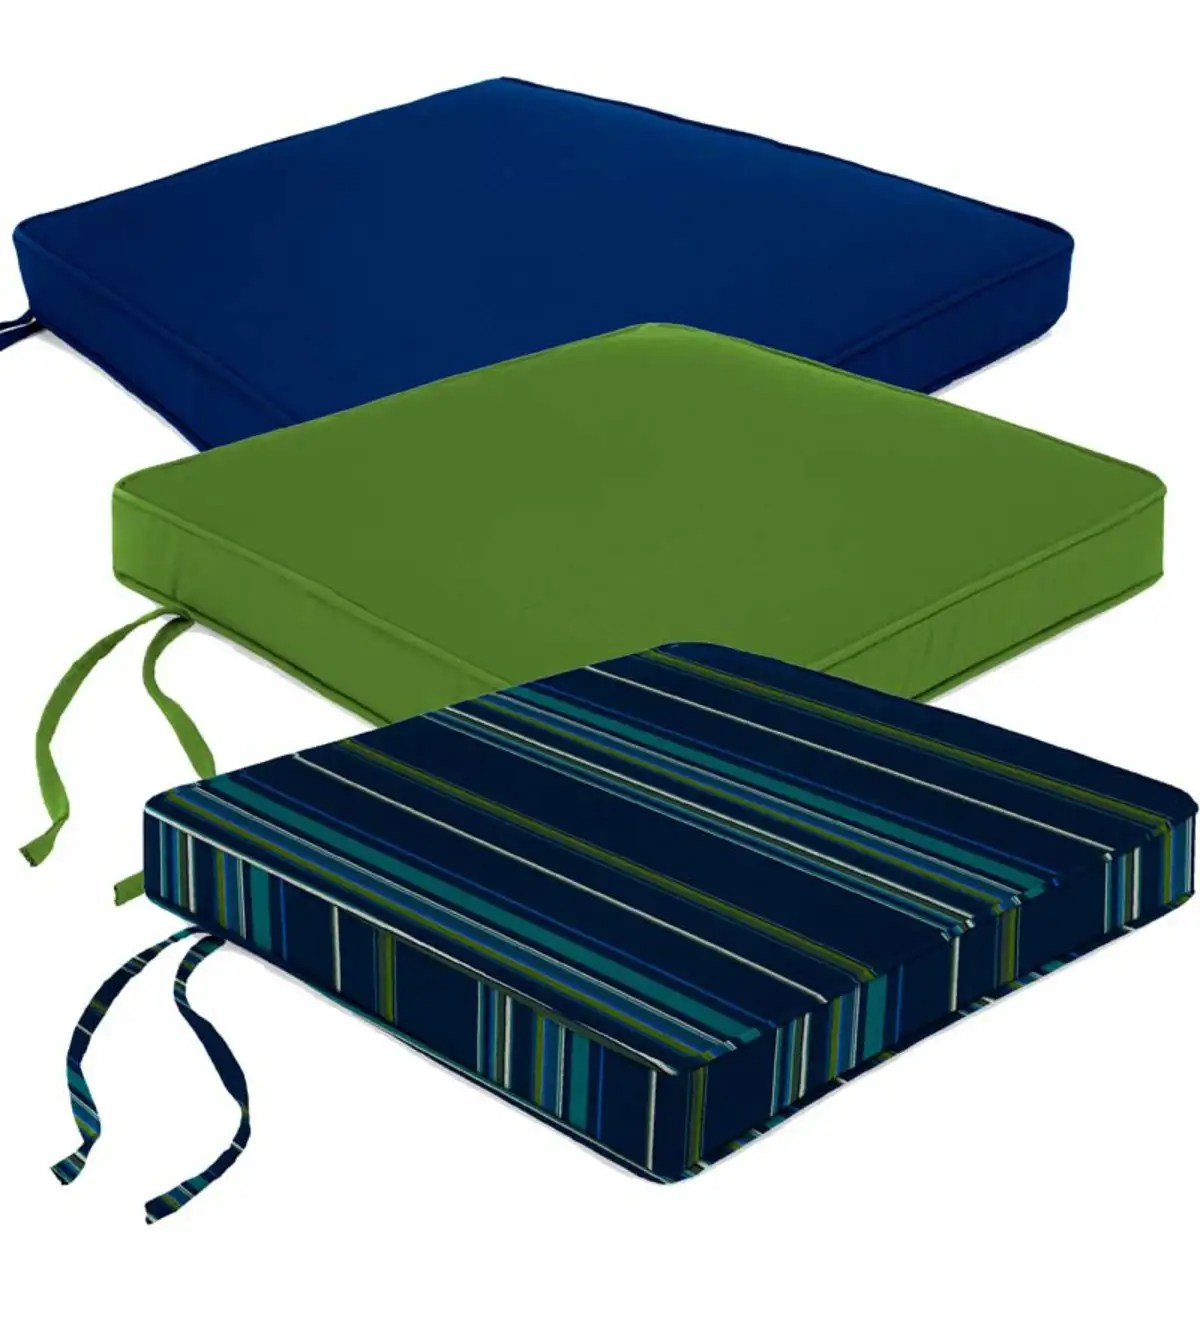 chair cushions with tie backs refrigerator deluxe sunbrella tapered rocker seat cushion ties 21